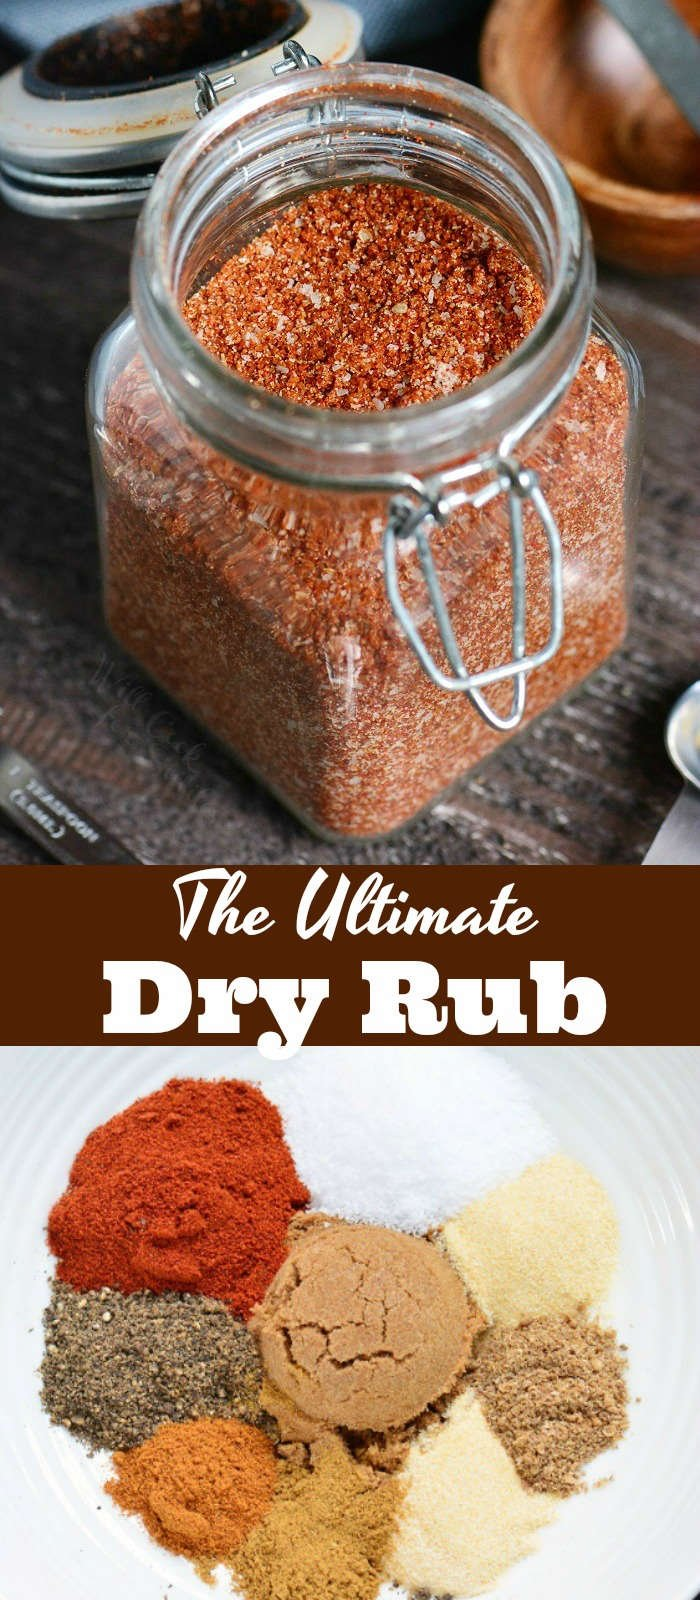 The Ultimate Dry Rub recipe. This is a great Dry Rub for ribs, for chicken, brisket, chicken wings, and more. Use this dry rub on any meat that you're grilling, smoking, or cooking in the oven. #meats #spices #dryrub #spicemix #grilling #bakedmeats